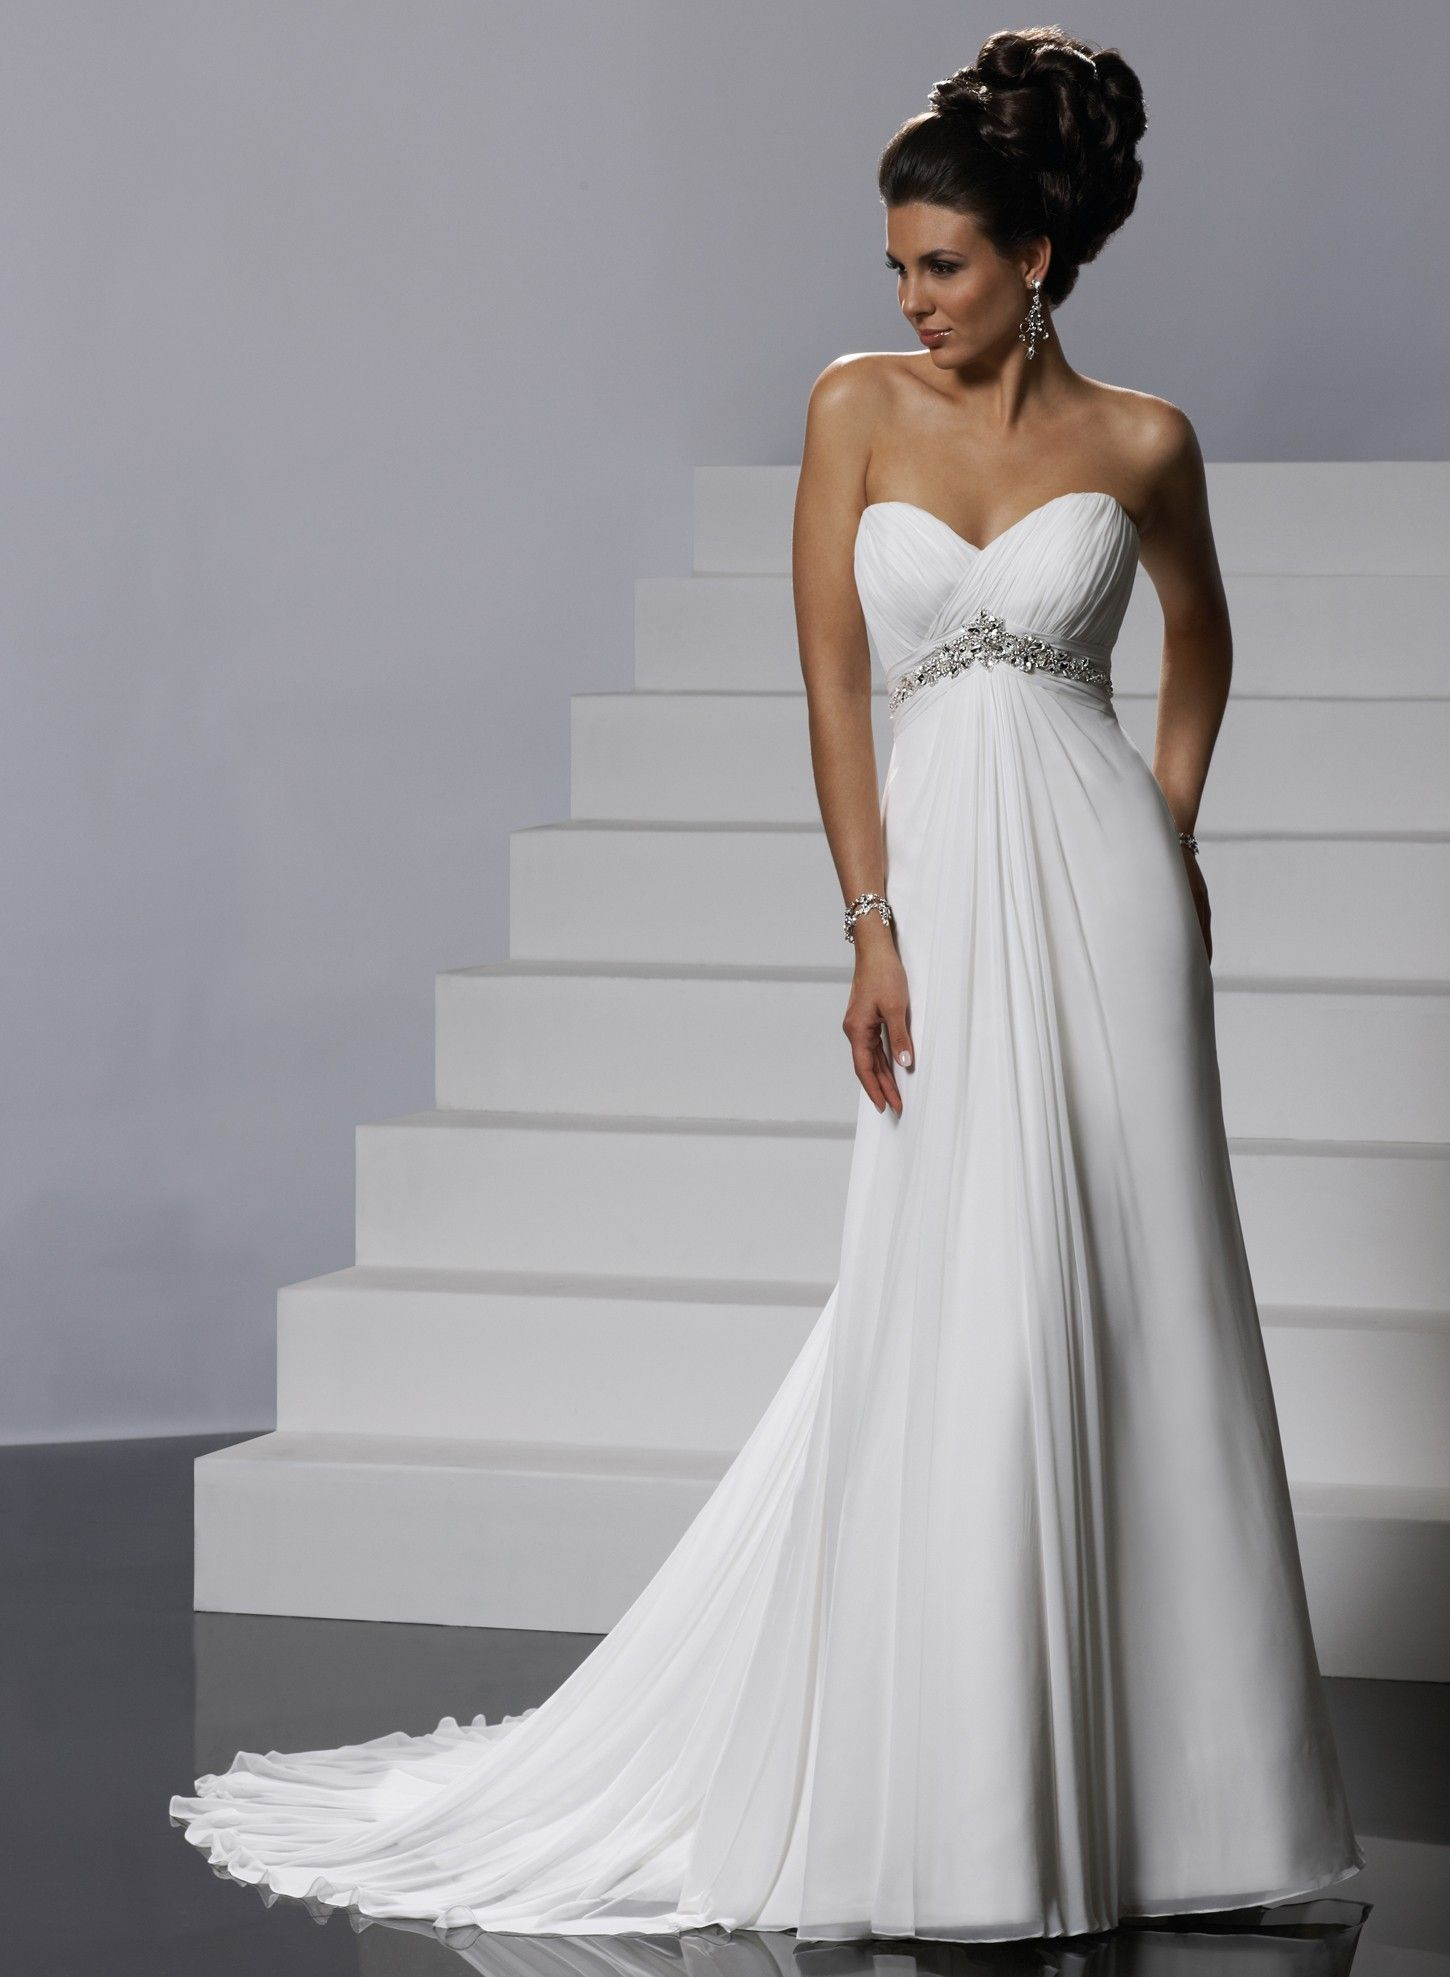 ceb6c629c8a7e Gossamer Chiffon Ruched Strapless Sweetheart Neckline Slim A-line Wedding  Dress